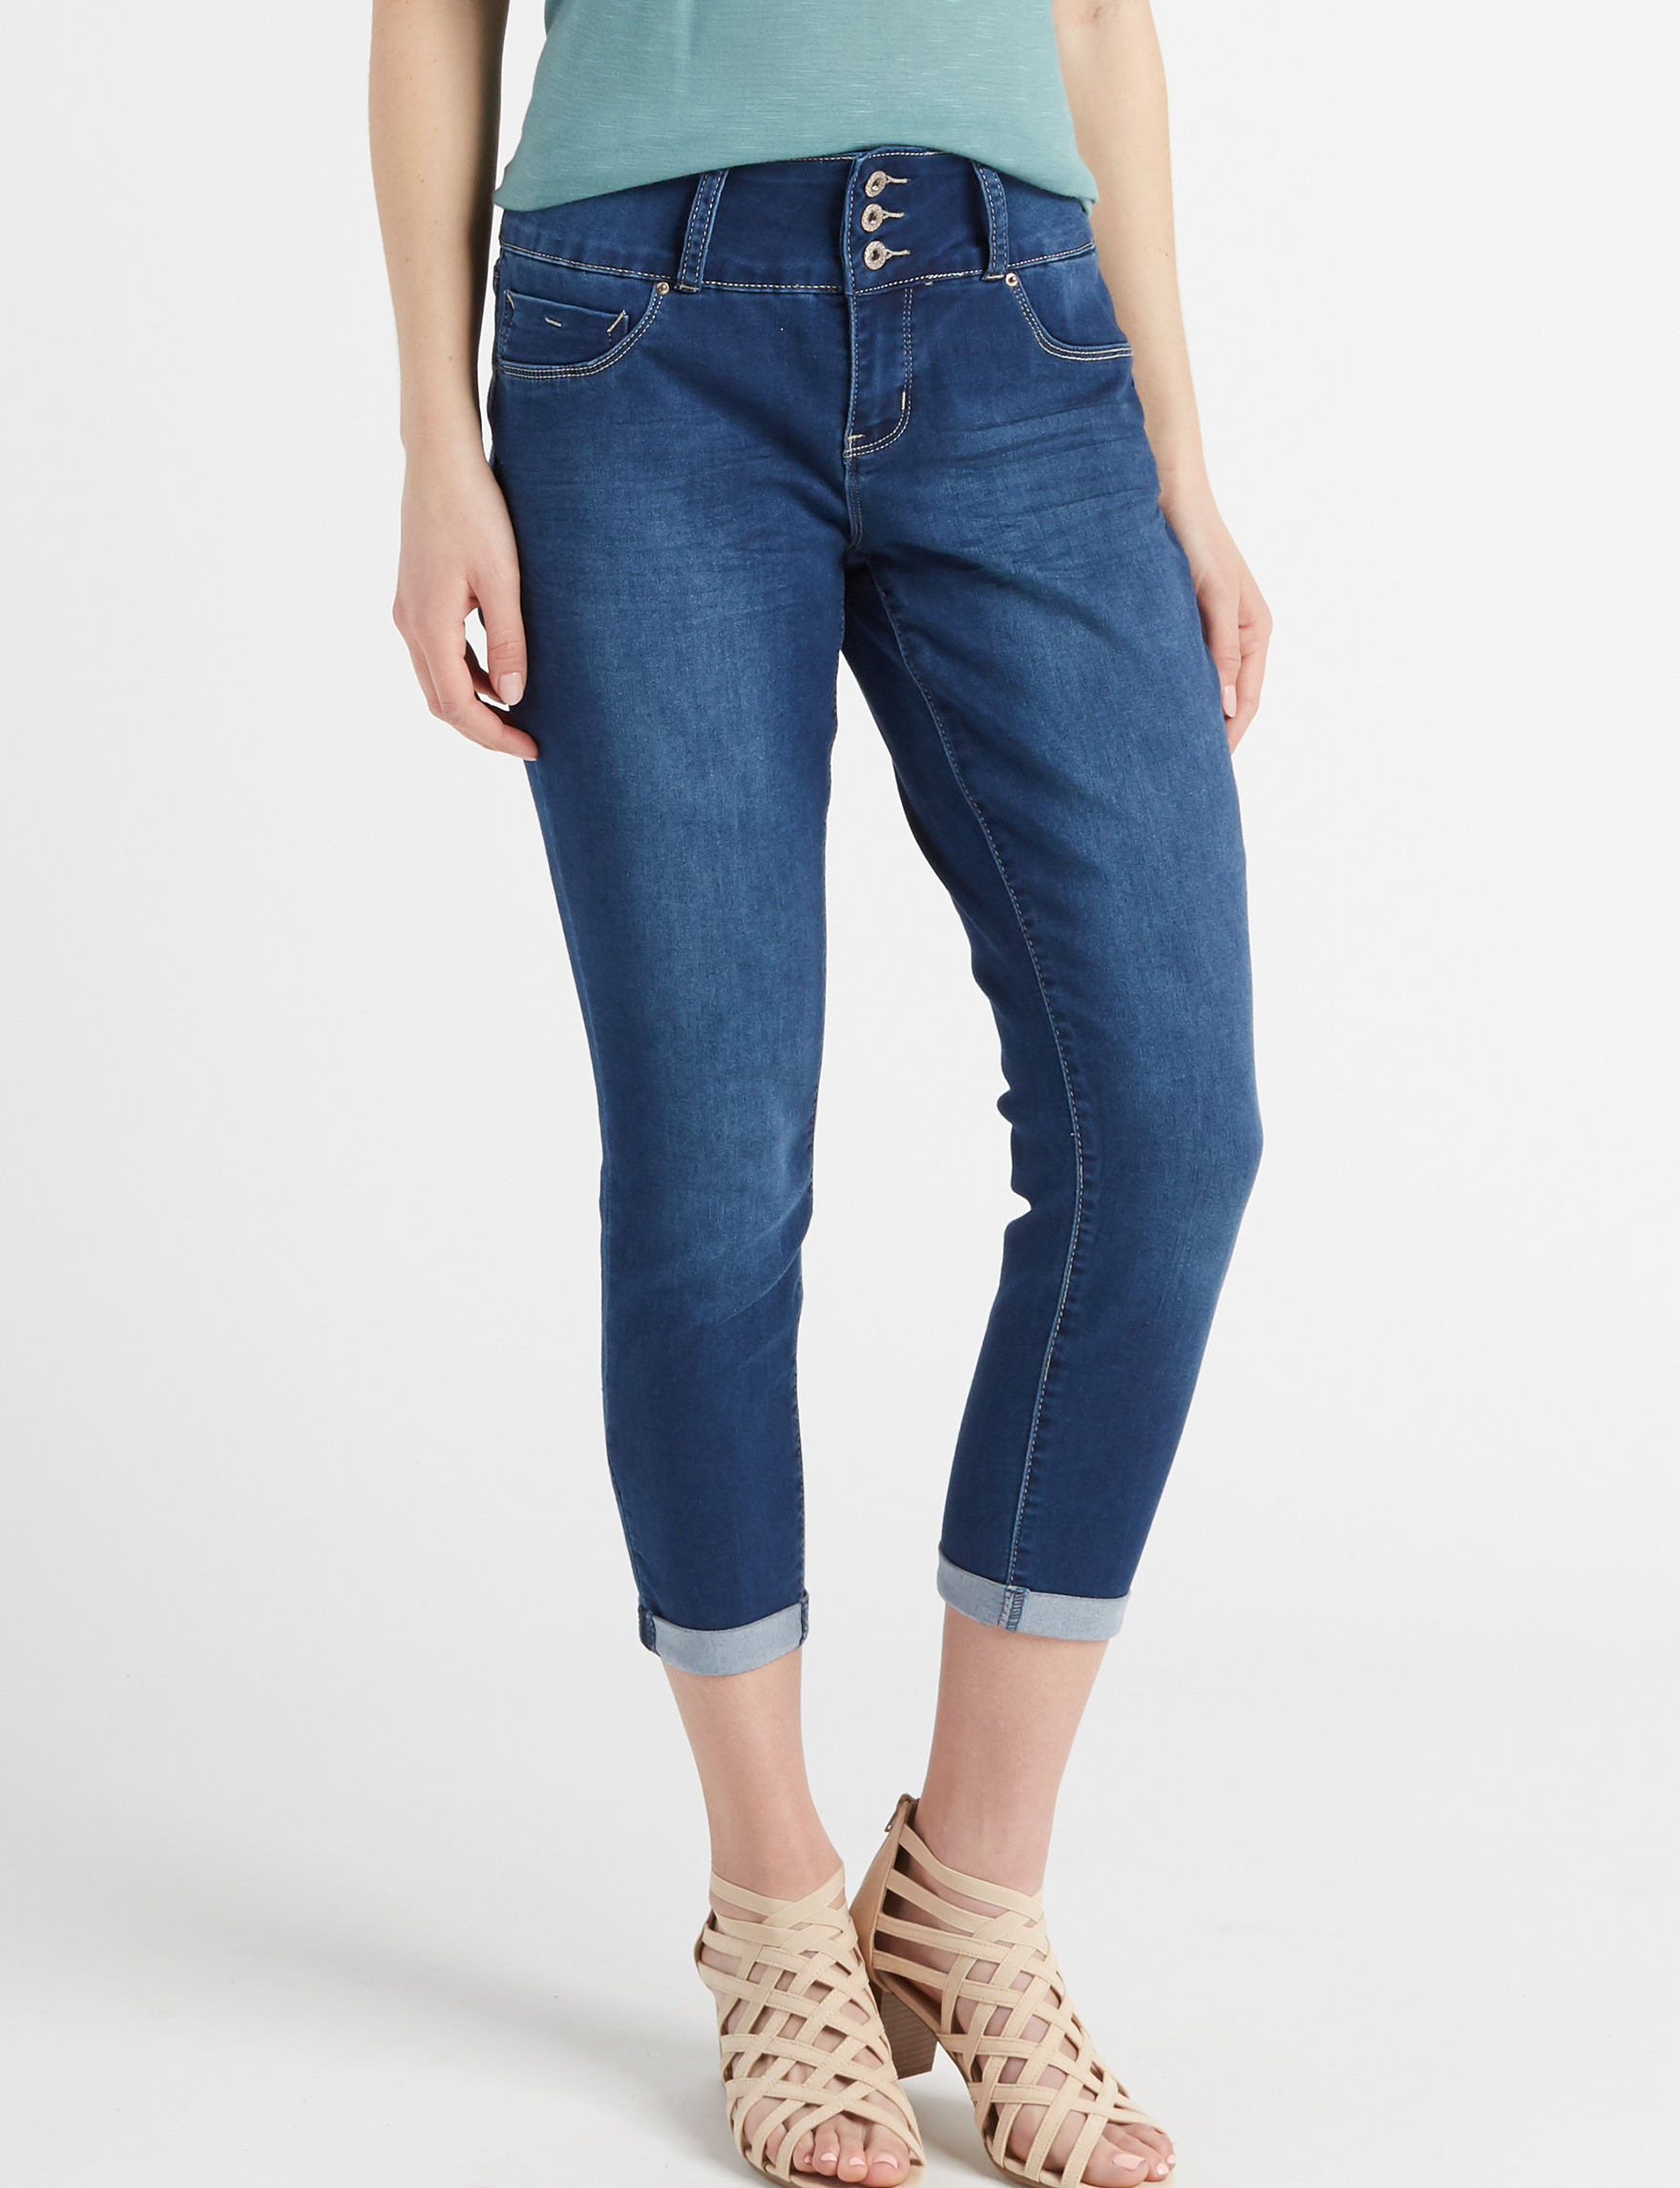 Signature Studio Dark Denim Capris & Crops